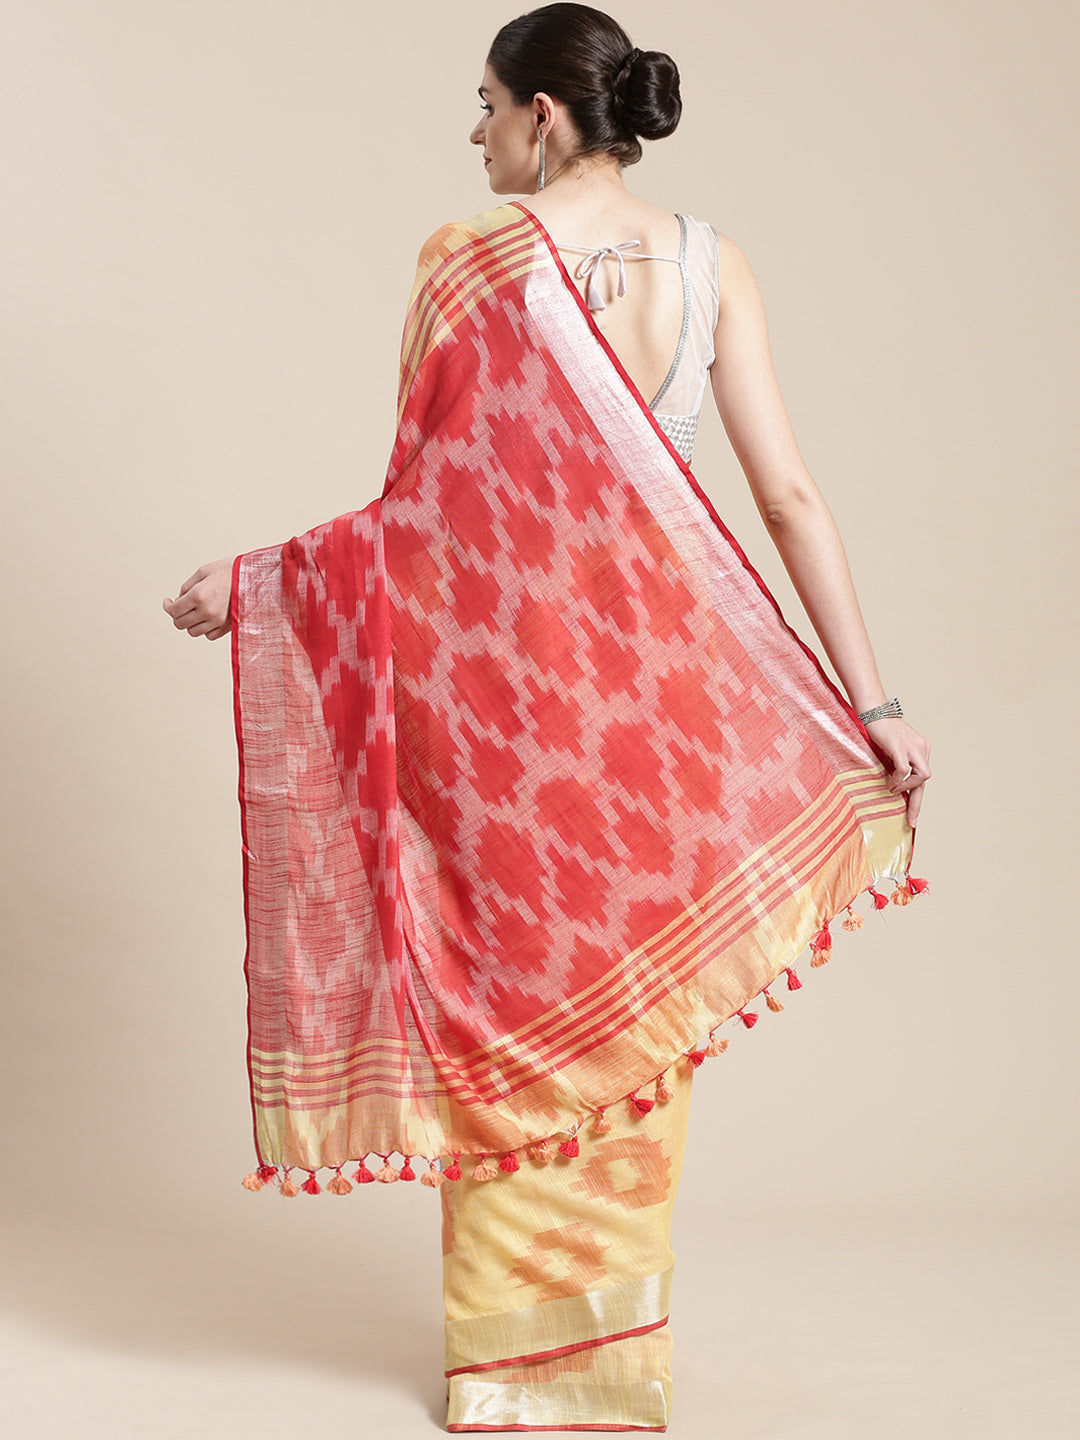 Linen Handwoven Saree and Blouse-Saree-Kalakari India-ALBGSA0045-Hand Woven, Linen, Sarees, Sustainable Fabrics, Traditional Weave-[Linen,Ethnic,wear,Fashionista,Handloom,Handicraft,Indigo,blockprint,block,print,Cotton,Chanderi,Blue, latest,classy,party,bollywood,trendy,summer,style,traditional,formal,elegant,unique,style,hand,block,print, dabu,booti,gift,present,glamorous,affordable,collectible,Sari,Saree,printed, holi, Diwali, birthday, anniversary, sustainable, organic, scarf, online, low pri